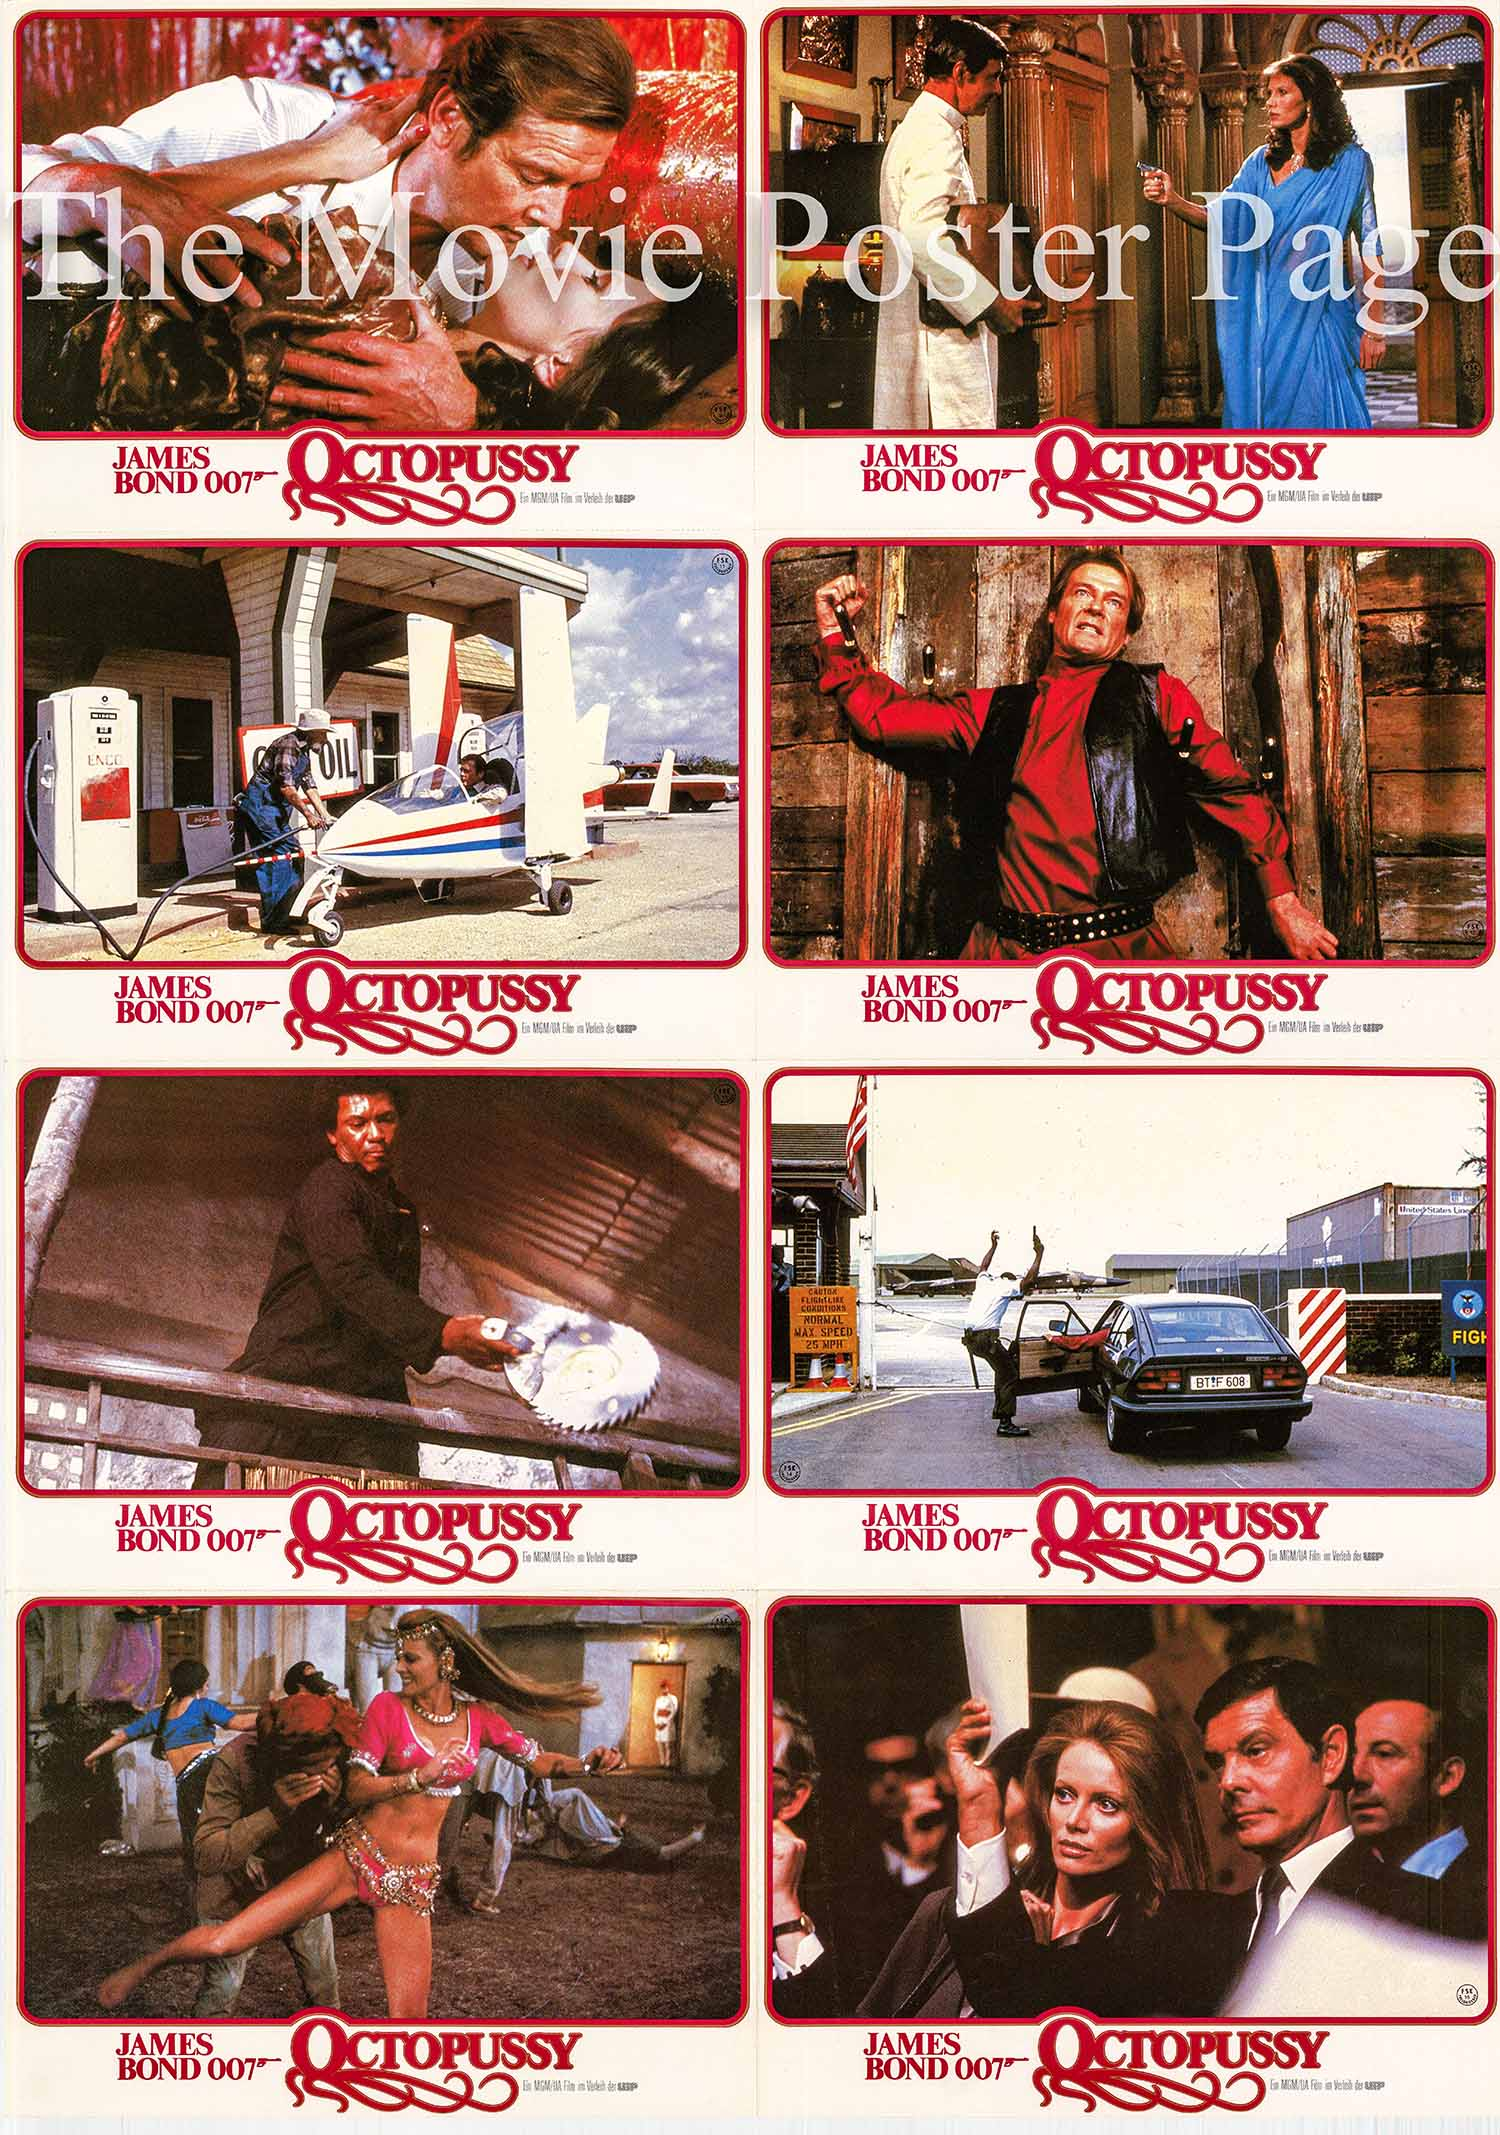 Pictured is a German perforated lobby sheet made to promote the 1983 John Glen film Octopussy starring Roger Moore as James Bond.